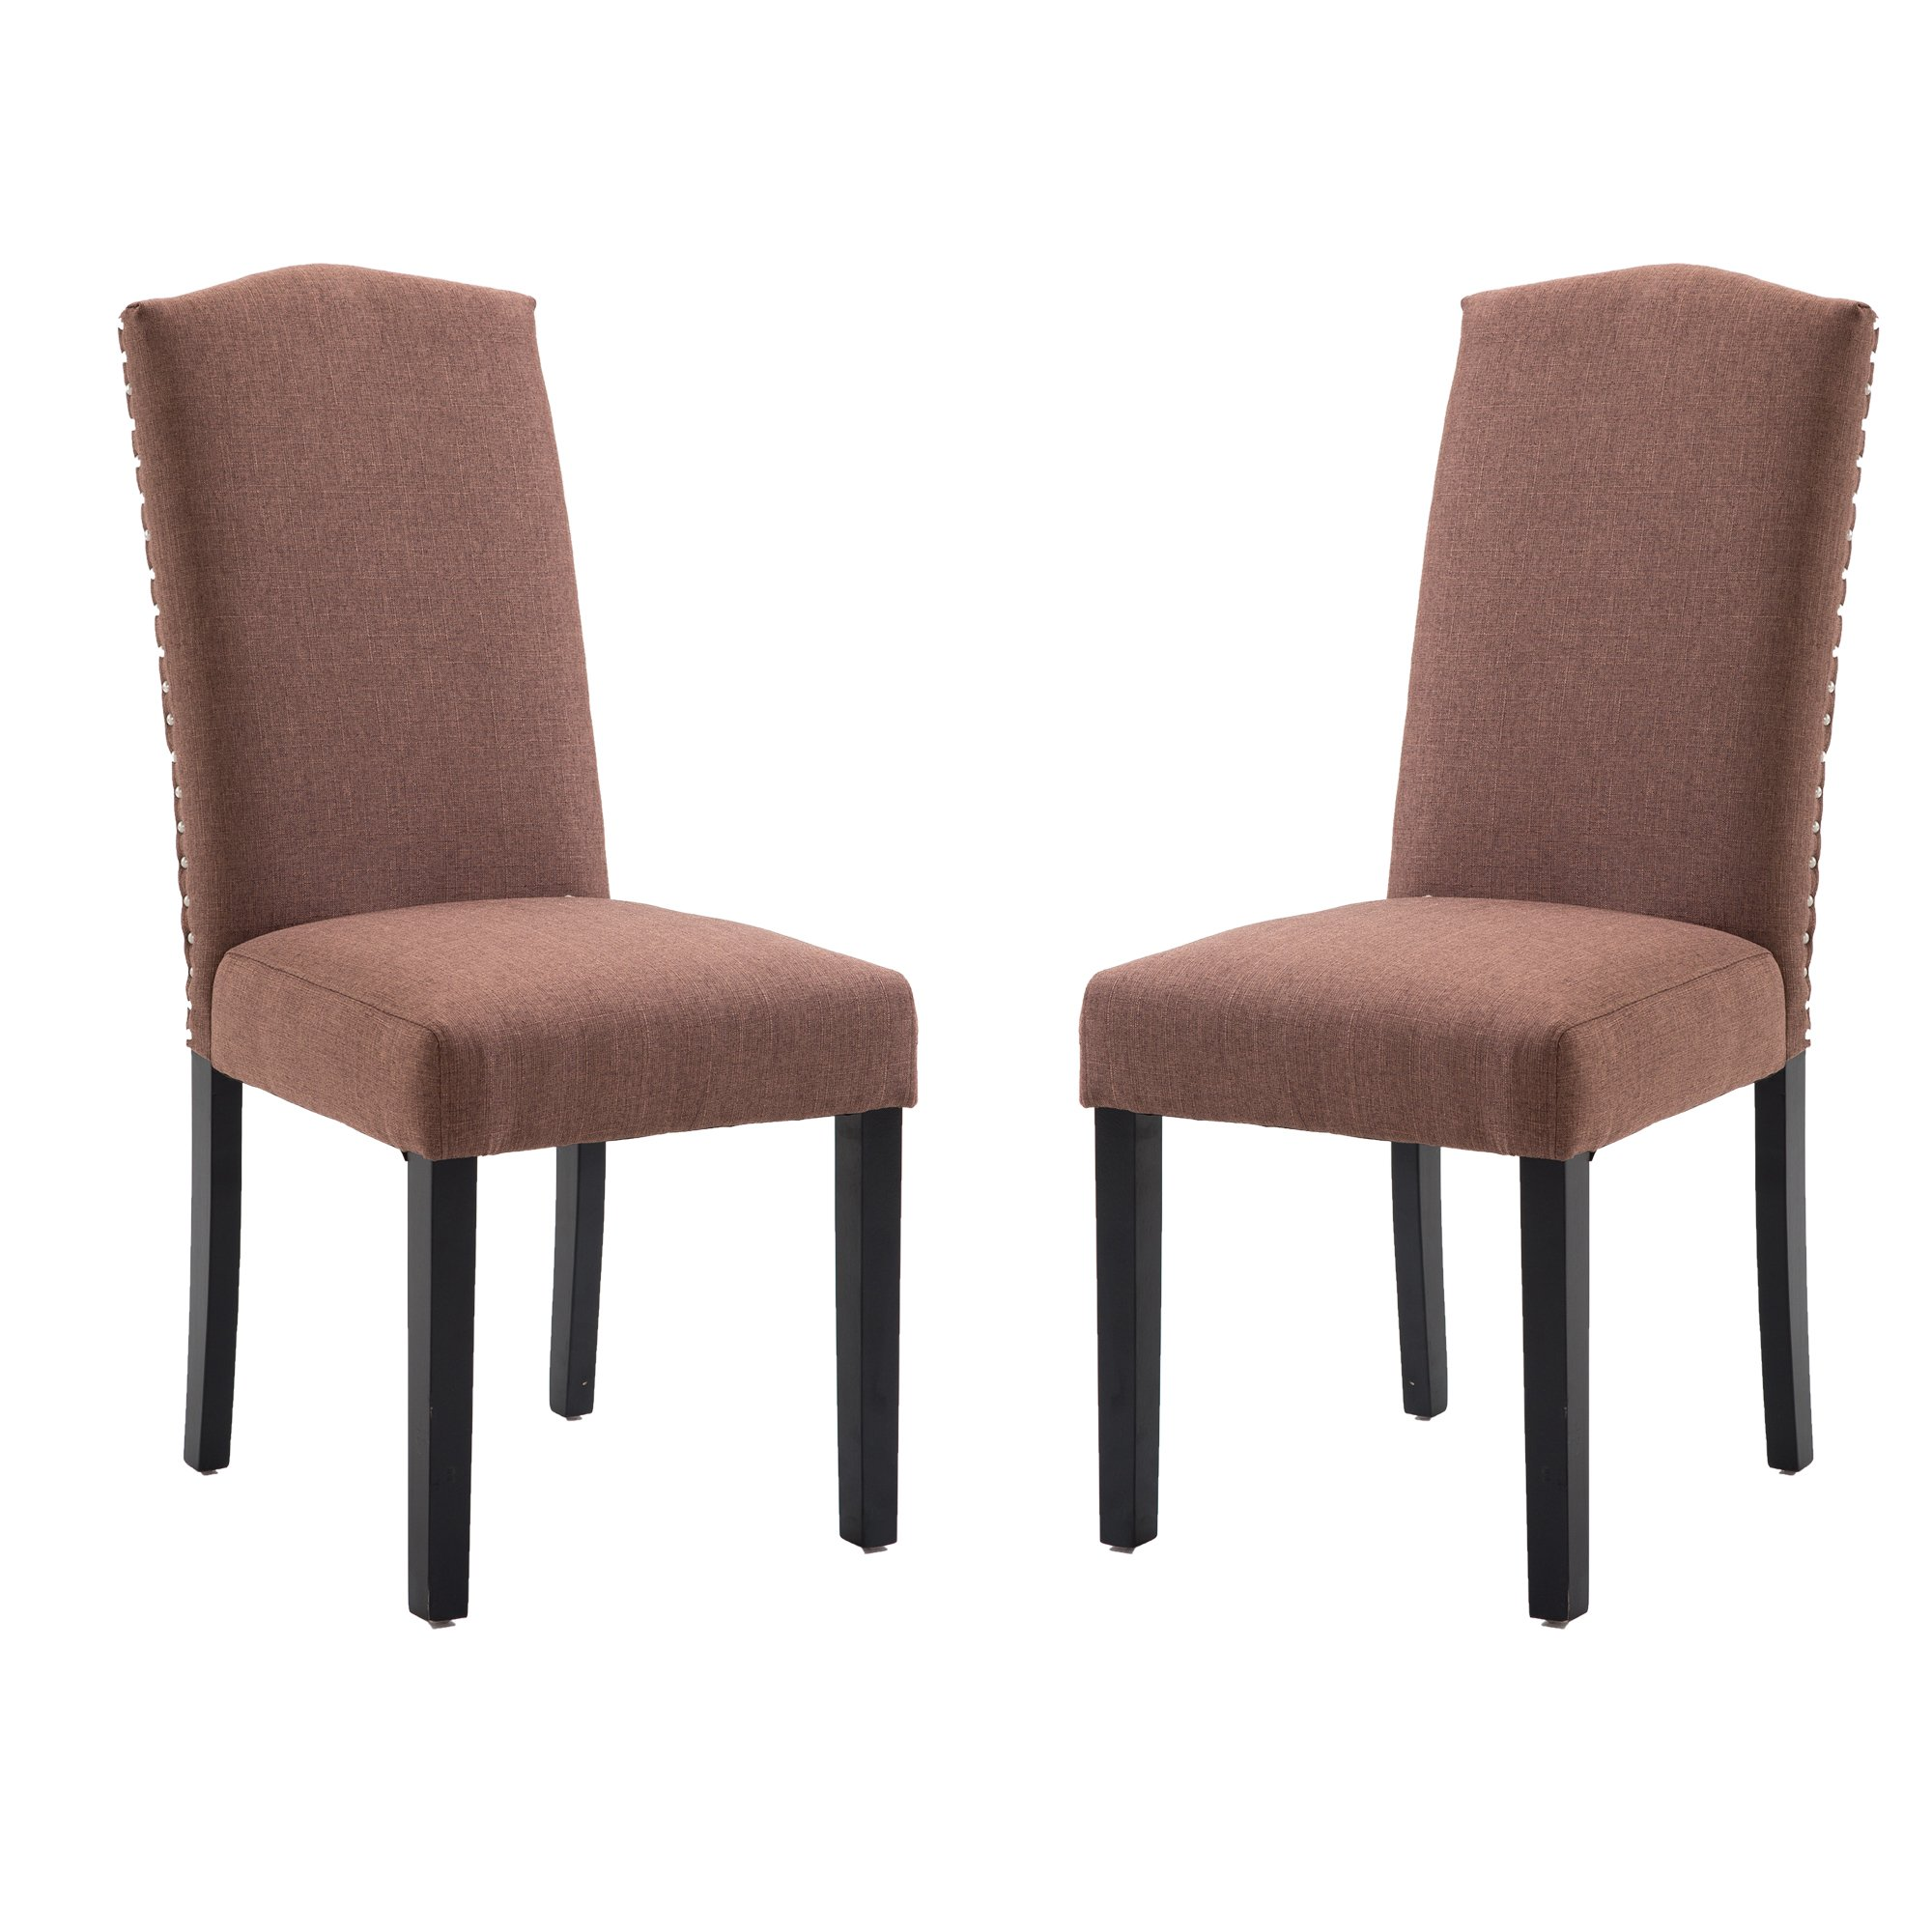 Per-Home Set of 2 Luxurious Fabric Dining Chairs with Copper Nails and Solid Wood Legs (Brown)